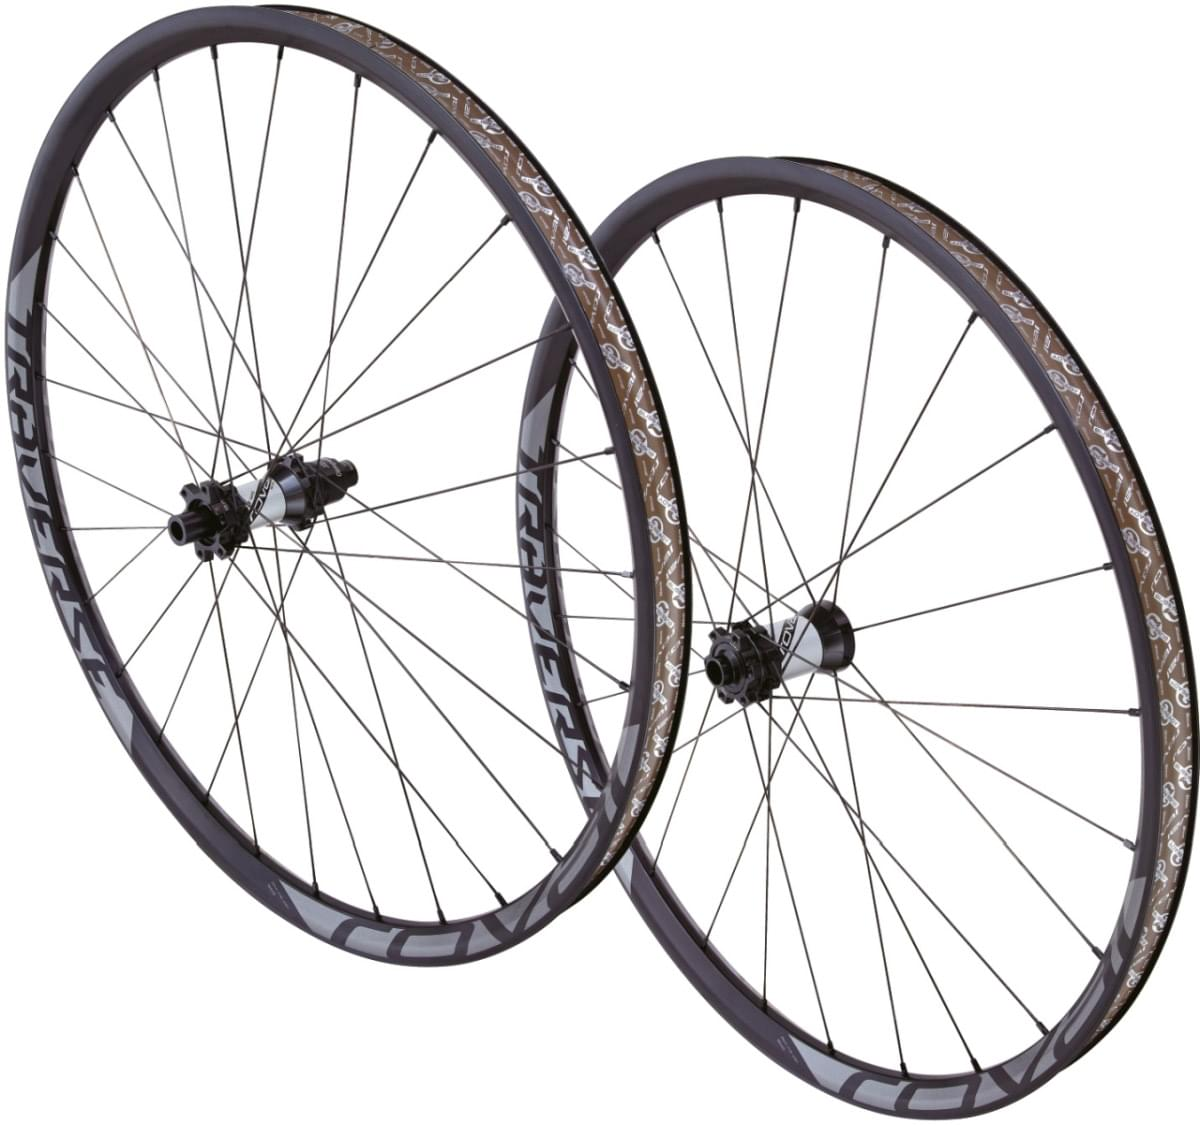 Specialized Roval Traverse 650B Wheelset - charcoal decal uni